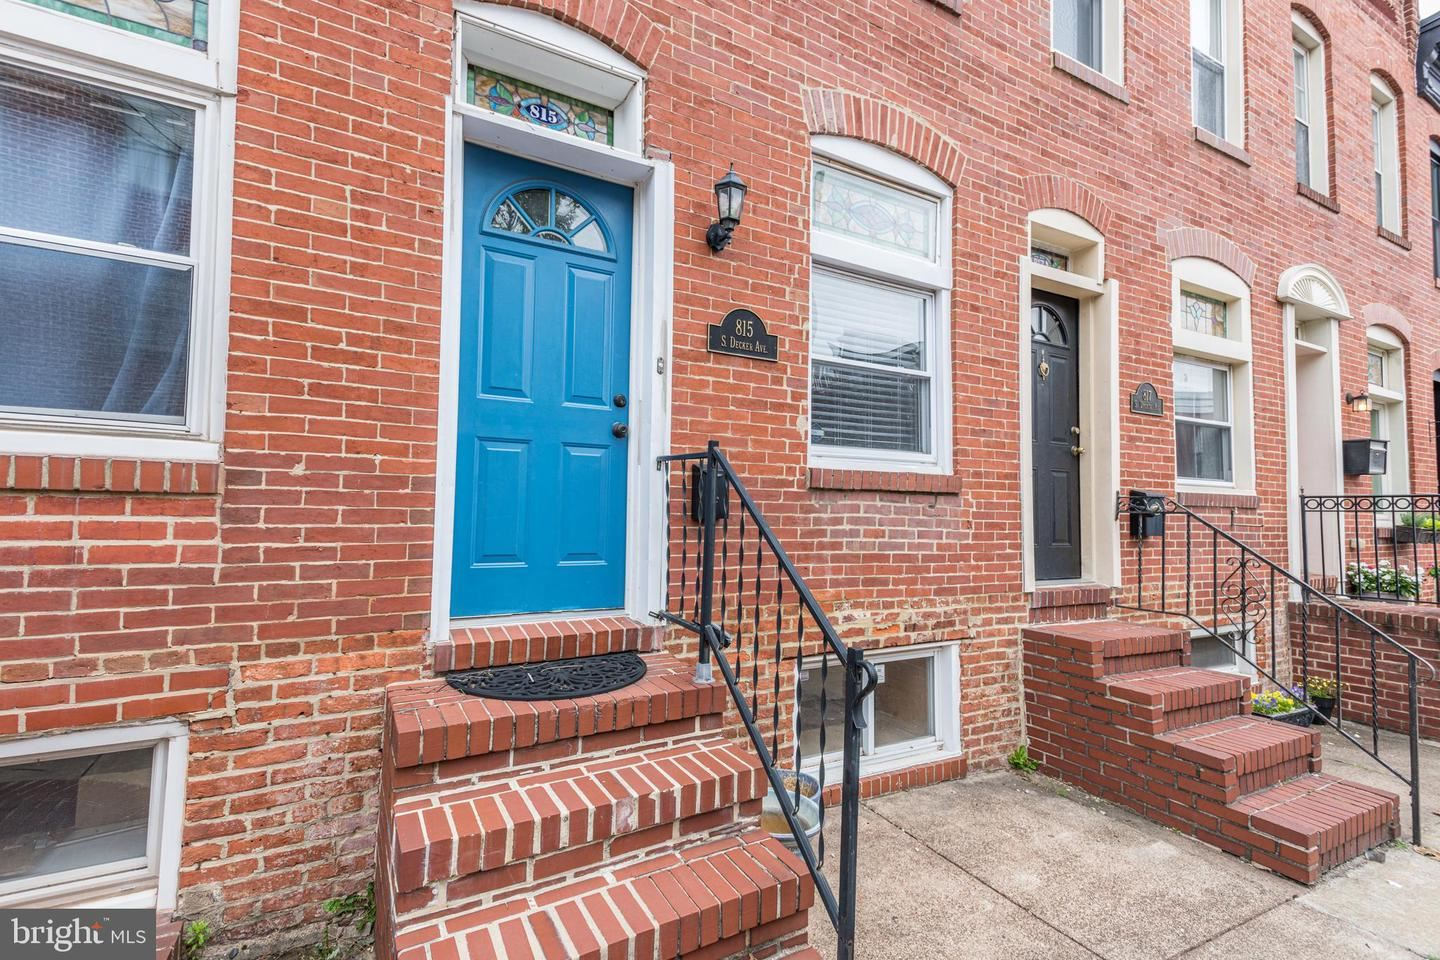 815 S DECKER AVE, Baltimore, MD 21224 - MLS#: MDBA547624